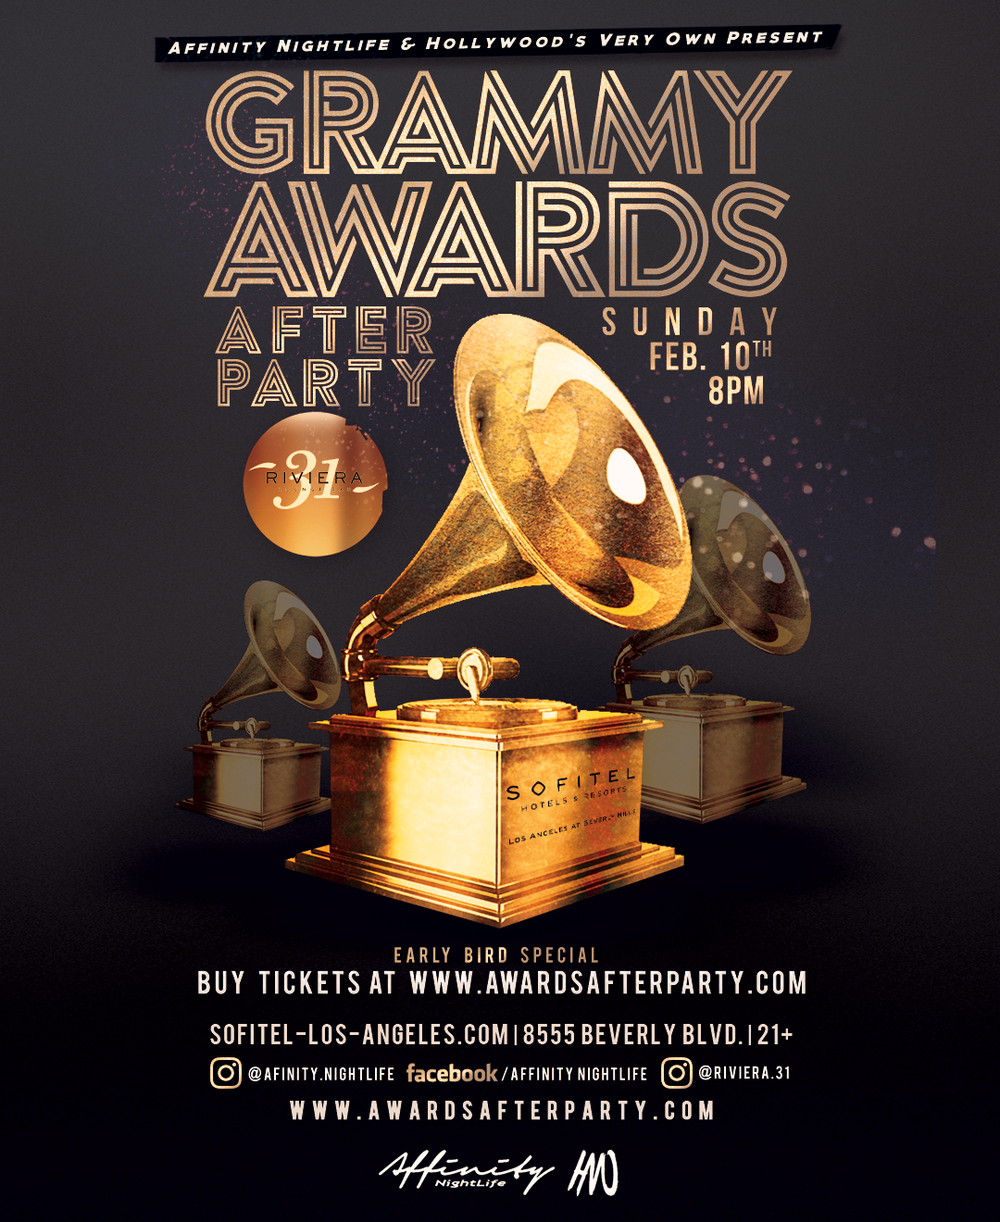 Grammy-Awards-Party-IG.png